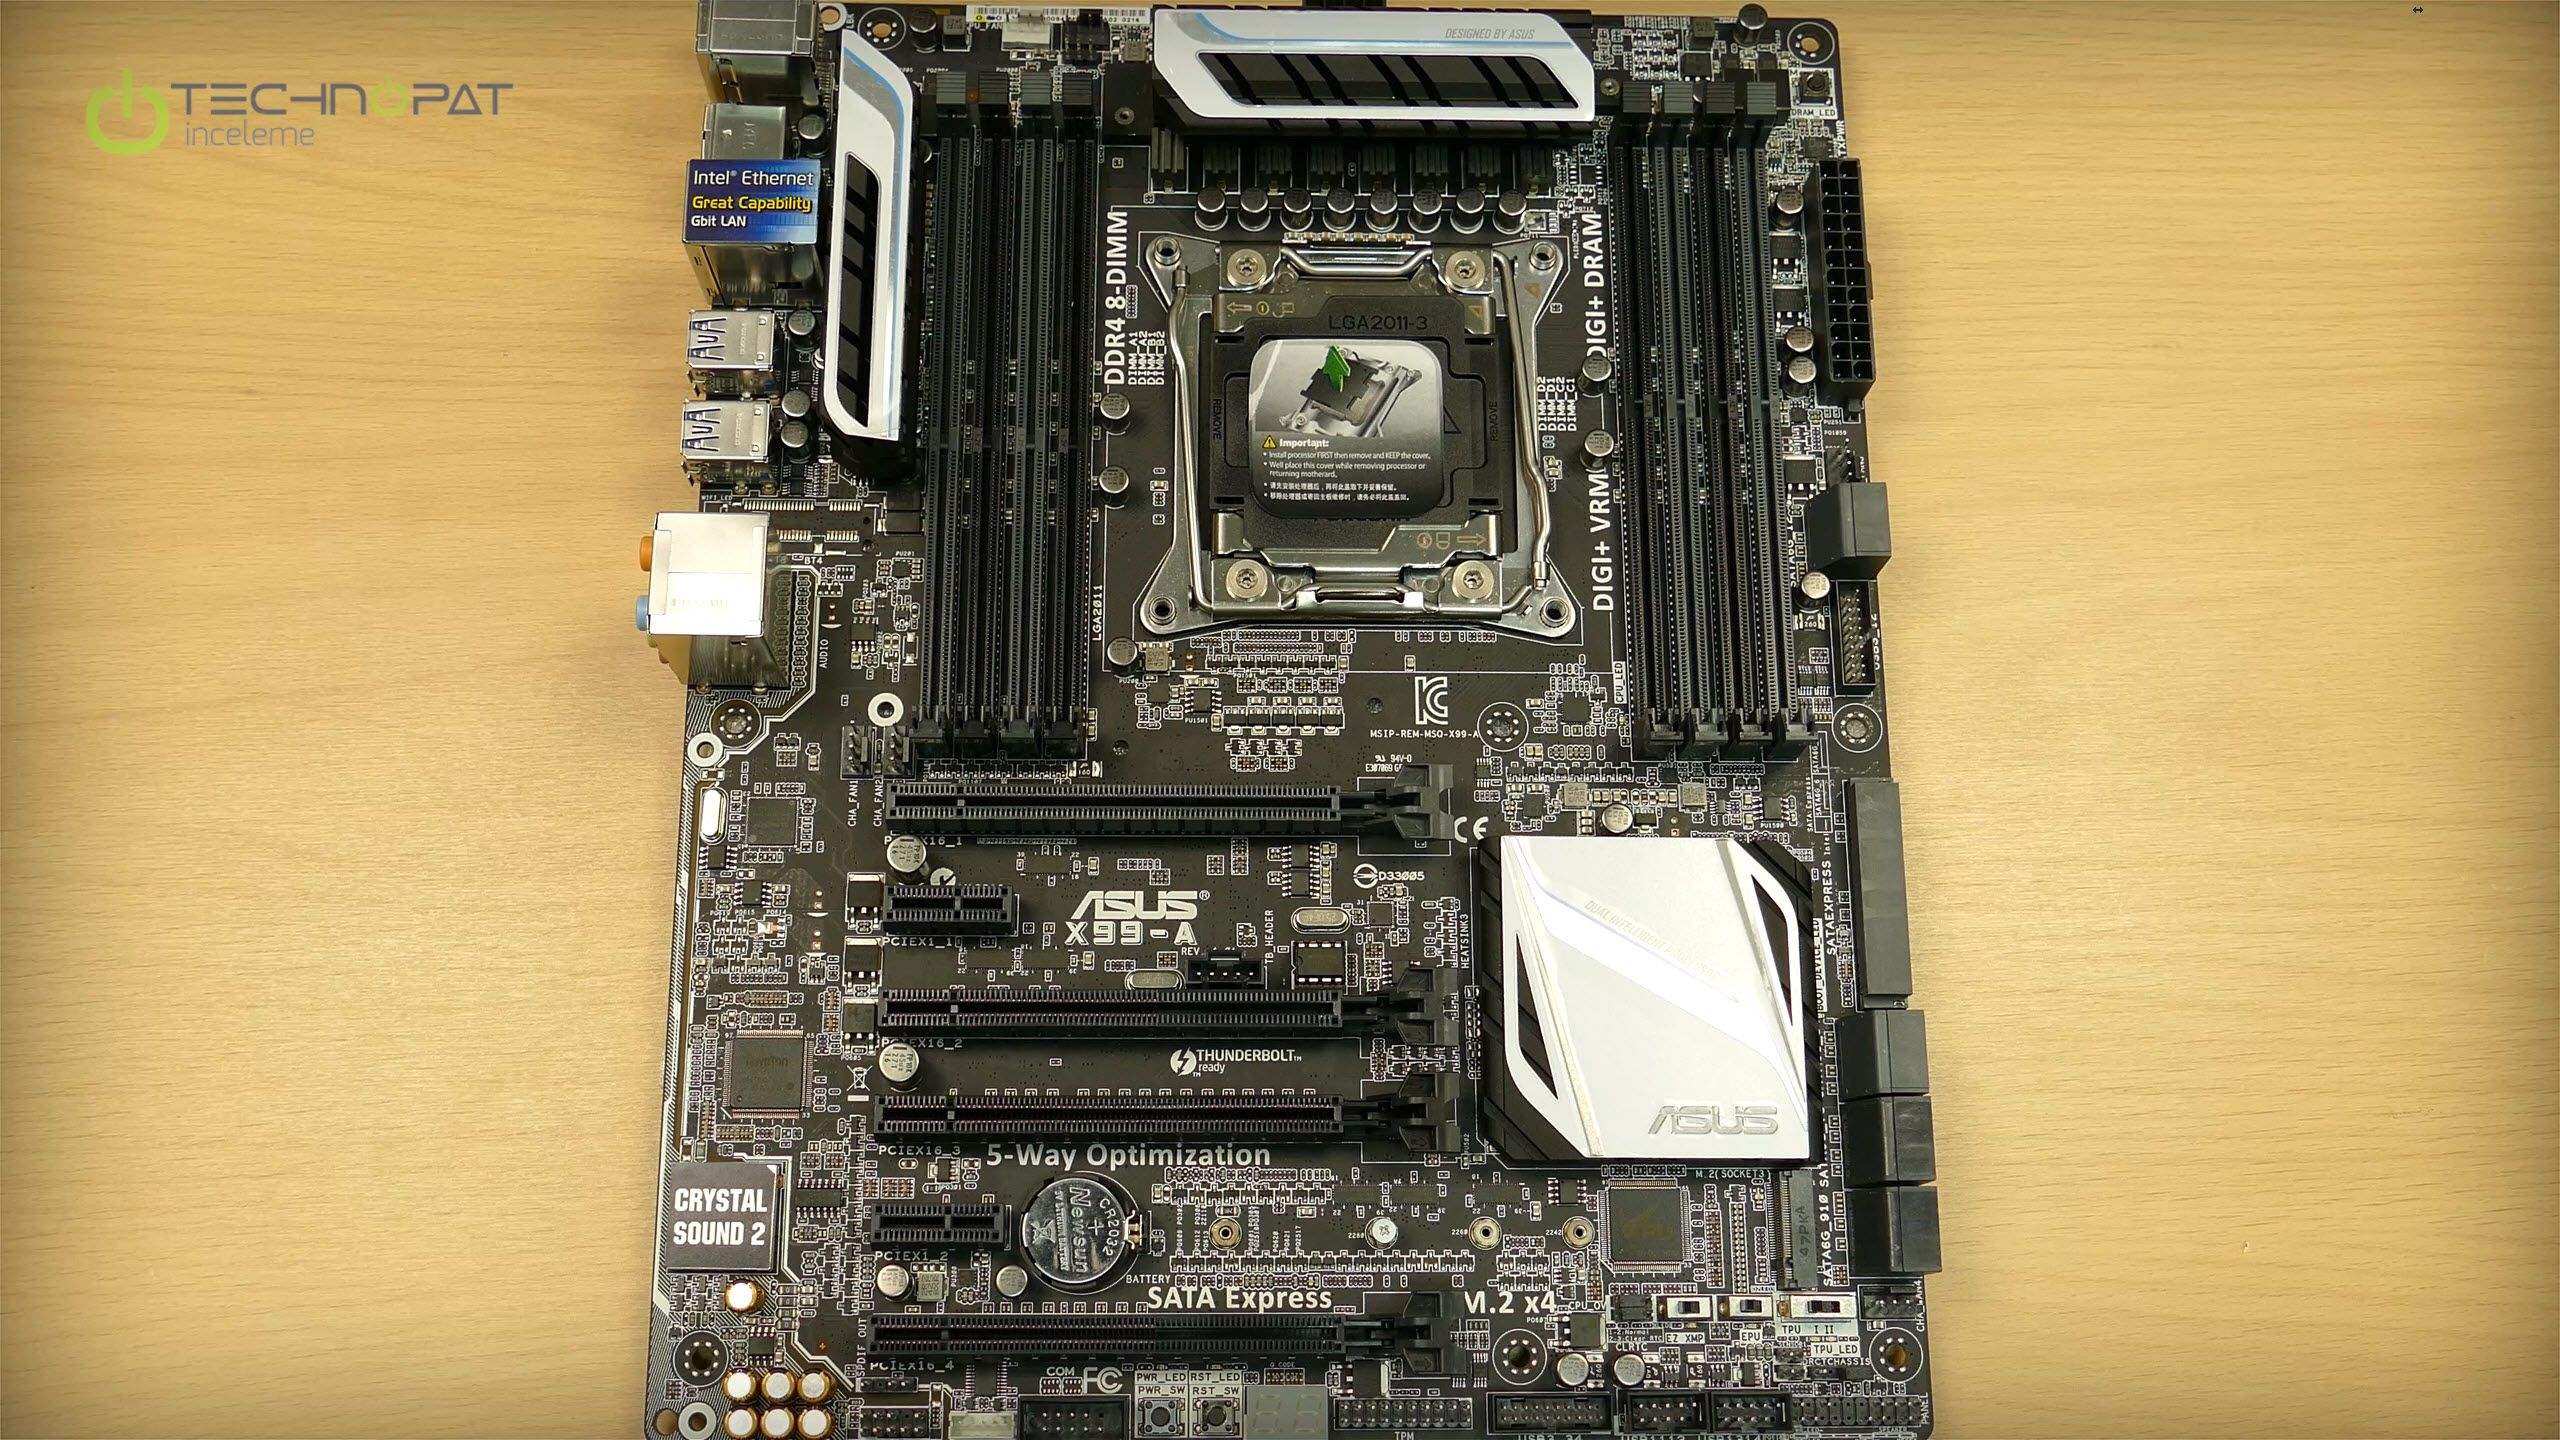 asus-x99-a-anakart-inceleme-technopat-2